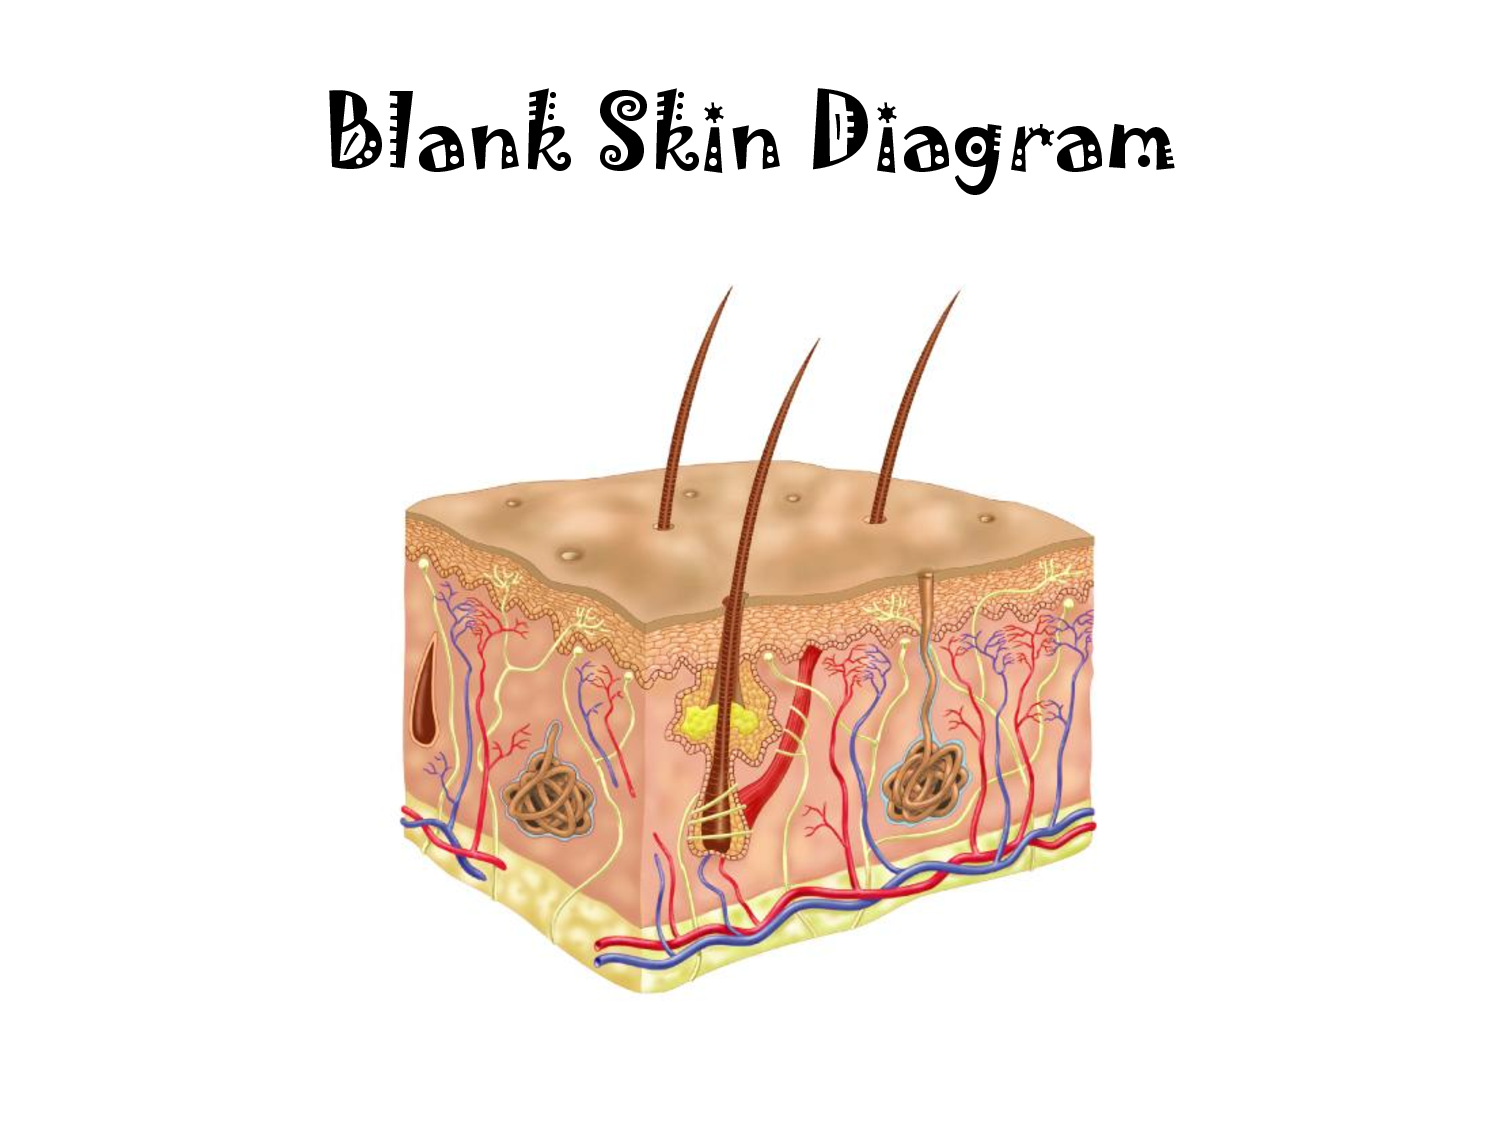 Blank Skin Diagram | Challenge A | Pinterest | Diagram and ...